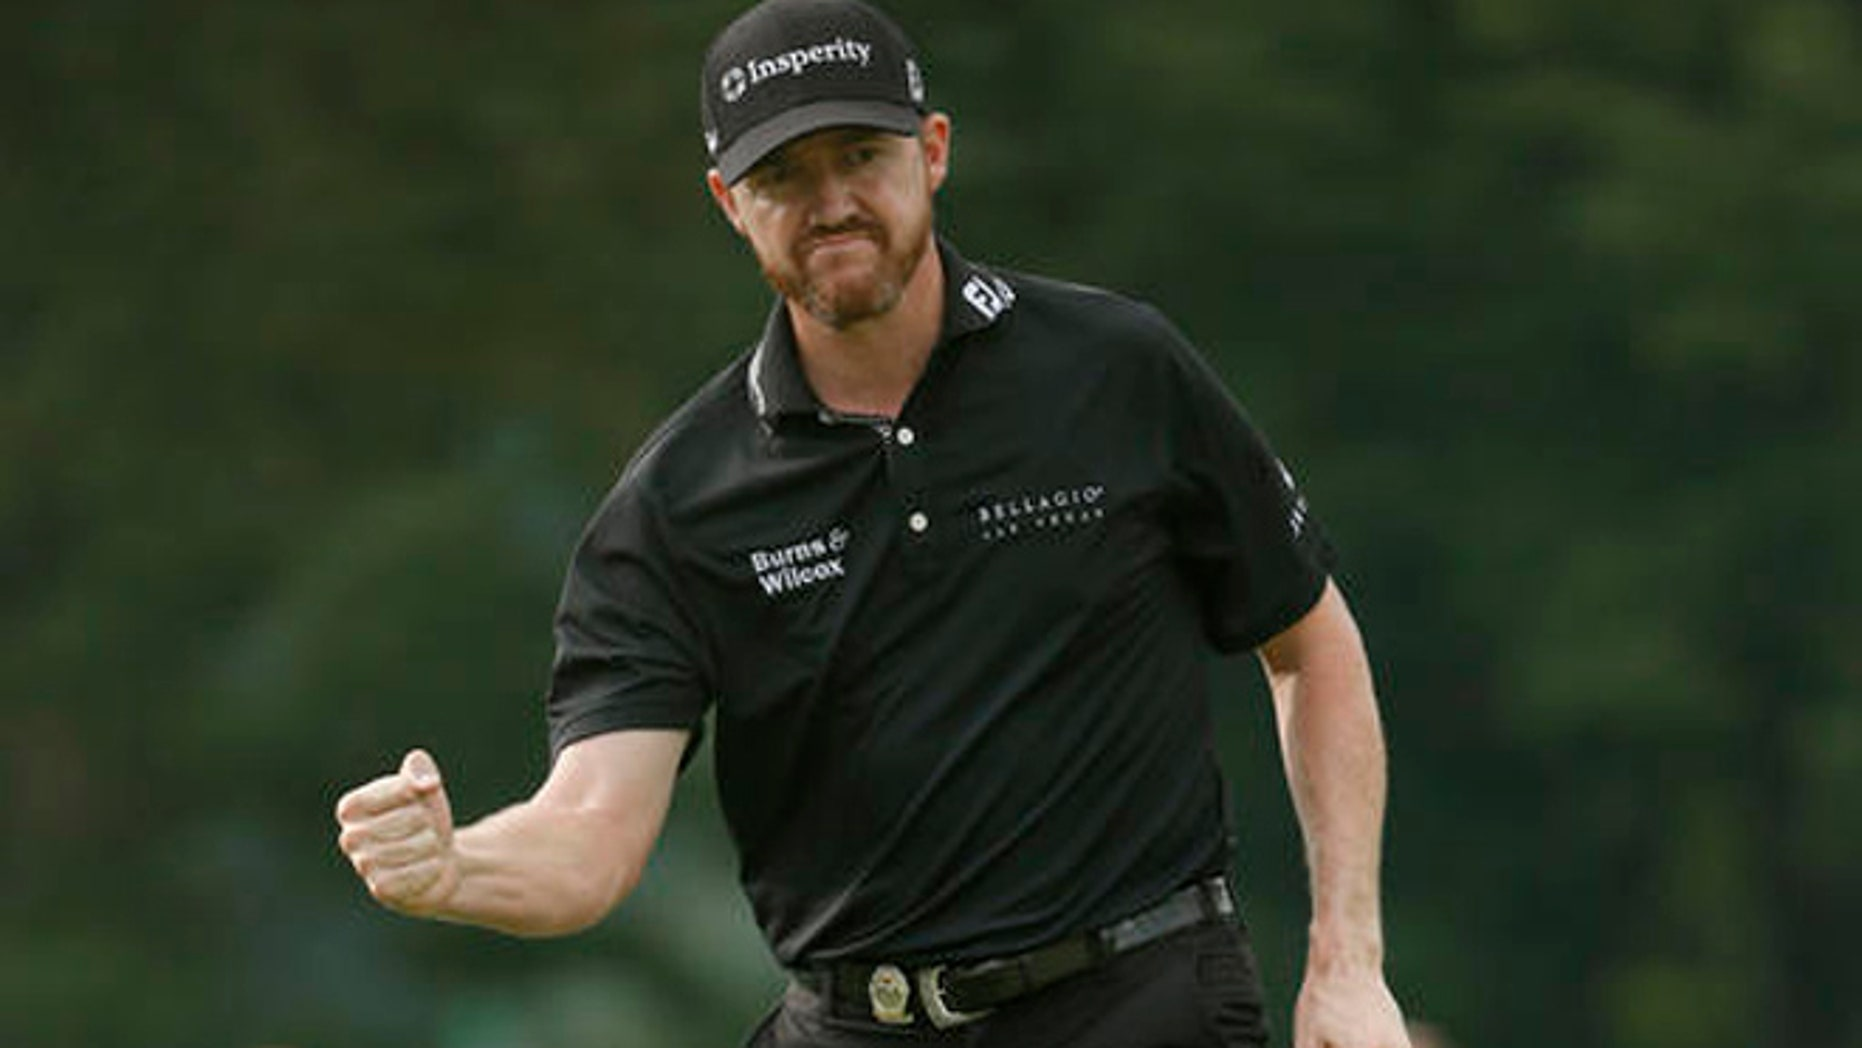 Jimmy Walker reacts to his birdie putt on the 11th hole during the final round of the PGA Championship golf tournament at Baltusrol Golf Club in Springfield, N.J., Sunday, July 31, 2016.